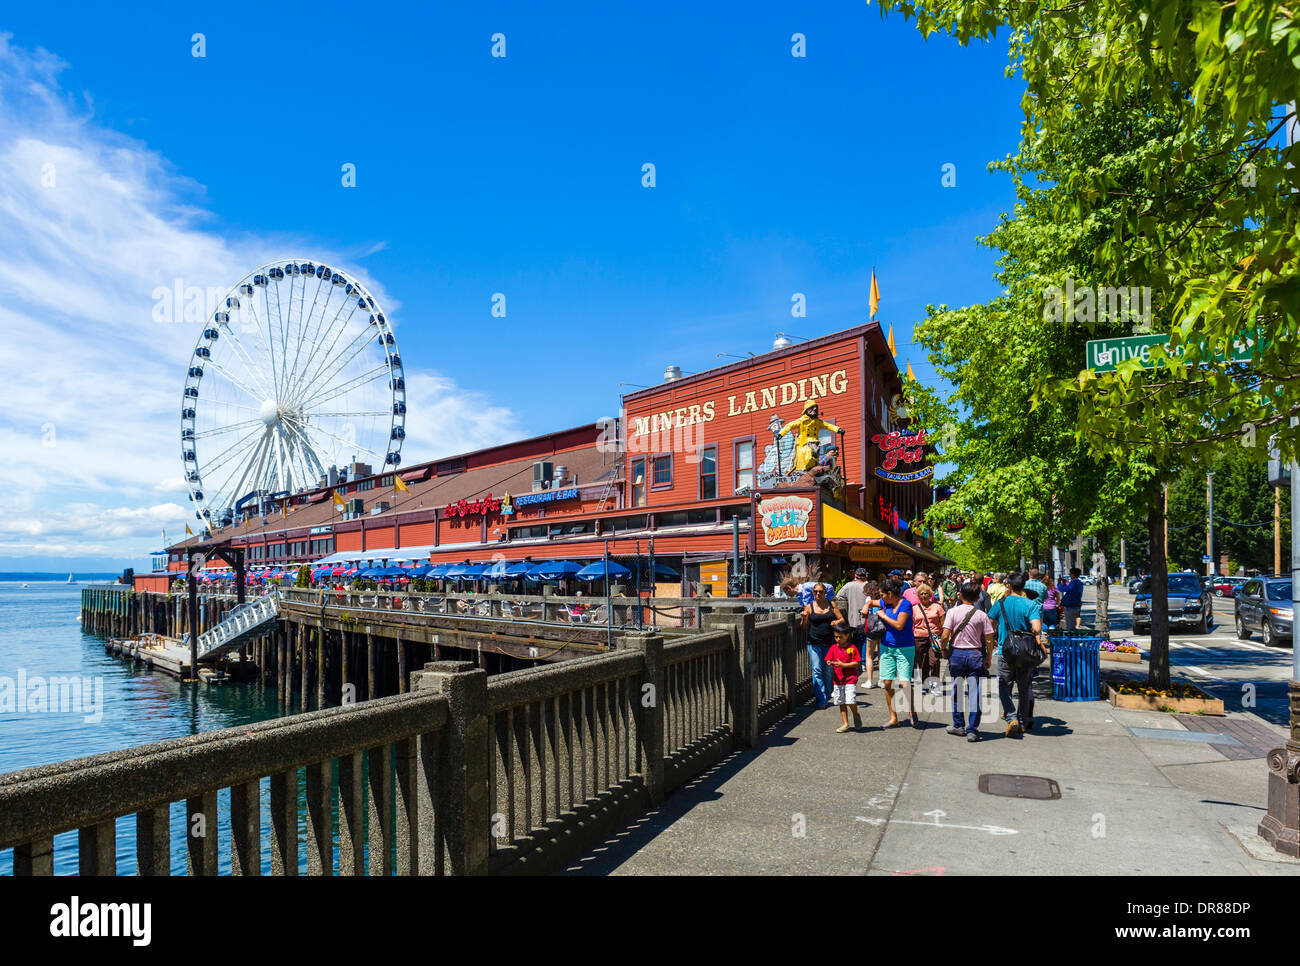 The Seattle waterfront looking towards Miners Landing on Pier 57, Alaskan Way, Seattle, Washington, USA - Stock Image